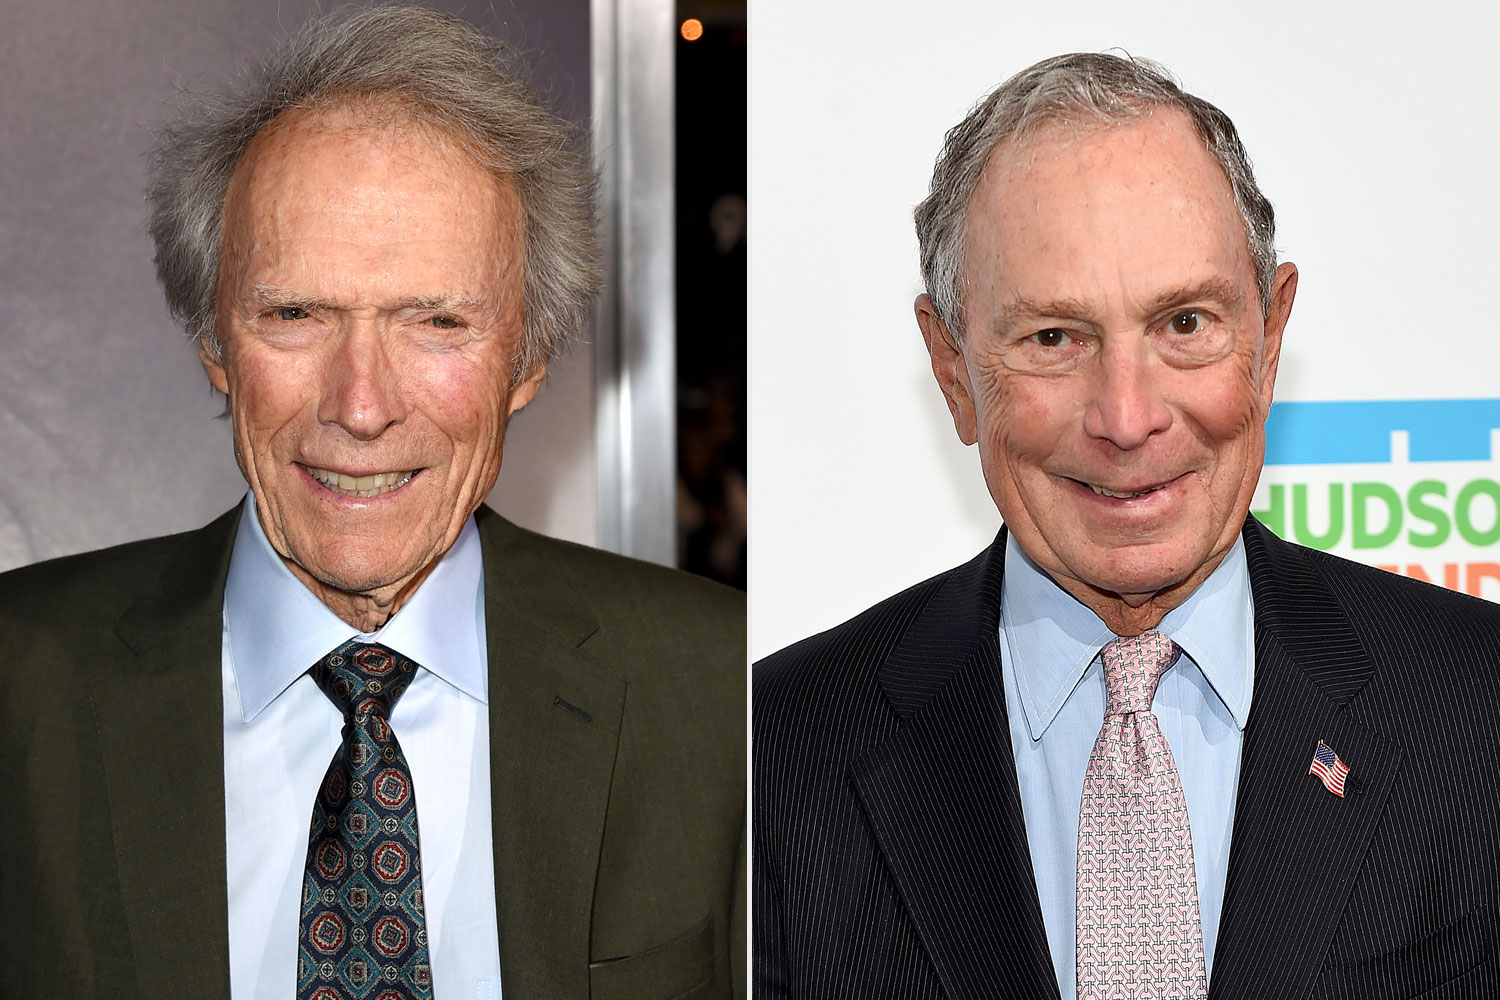 Clint Eastwood and Mike Bloomberg